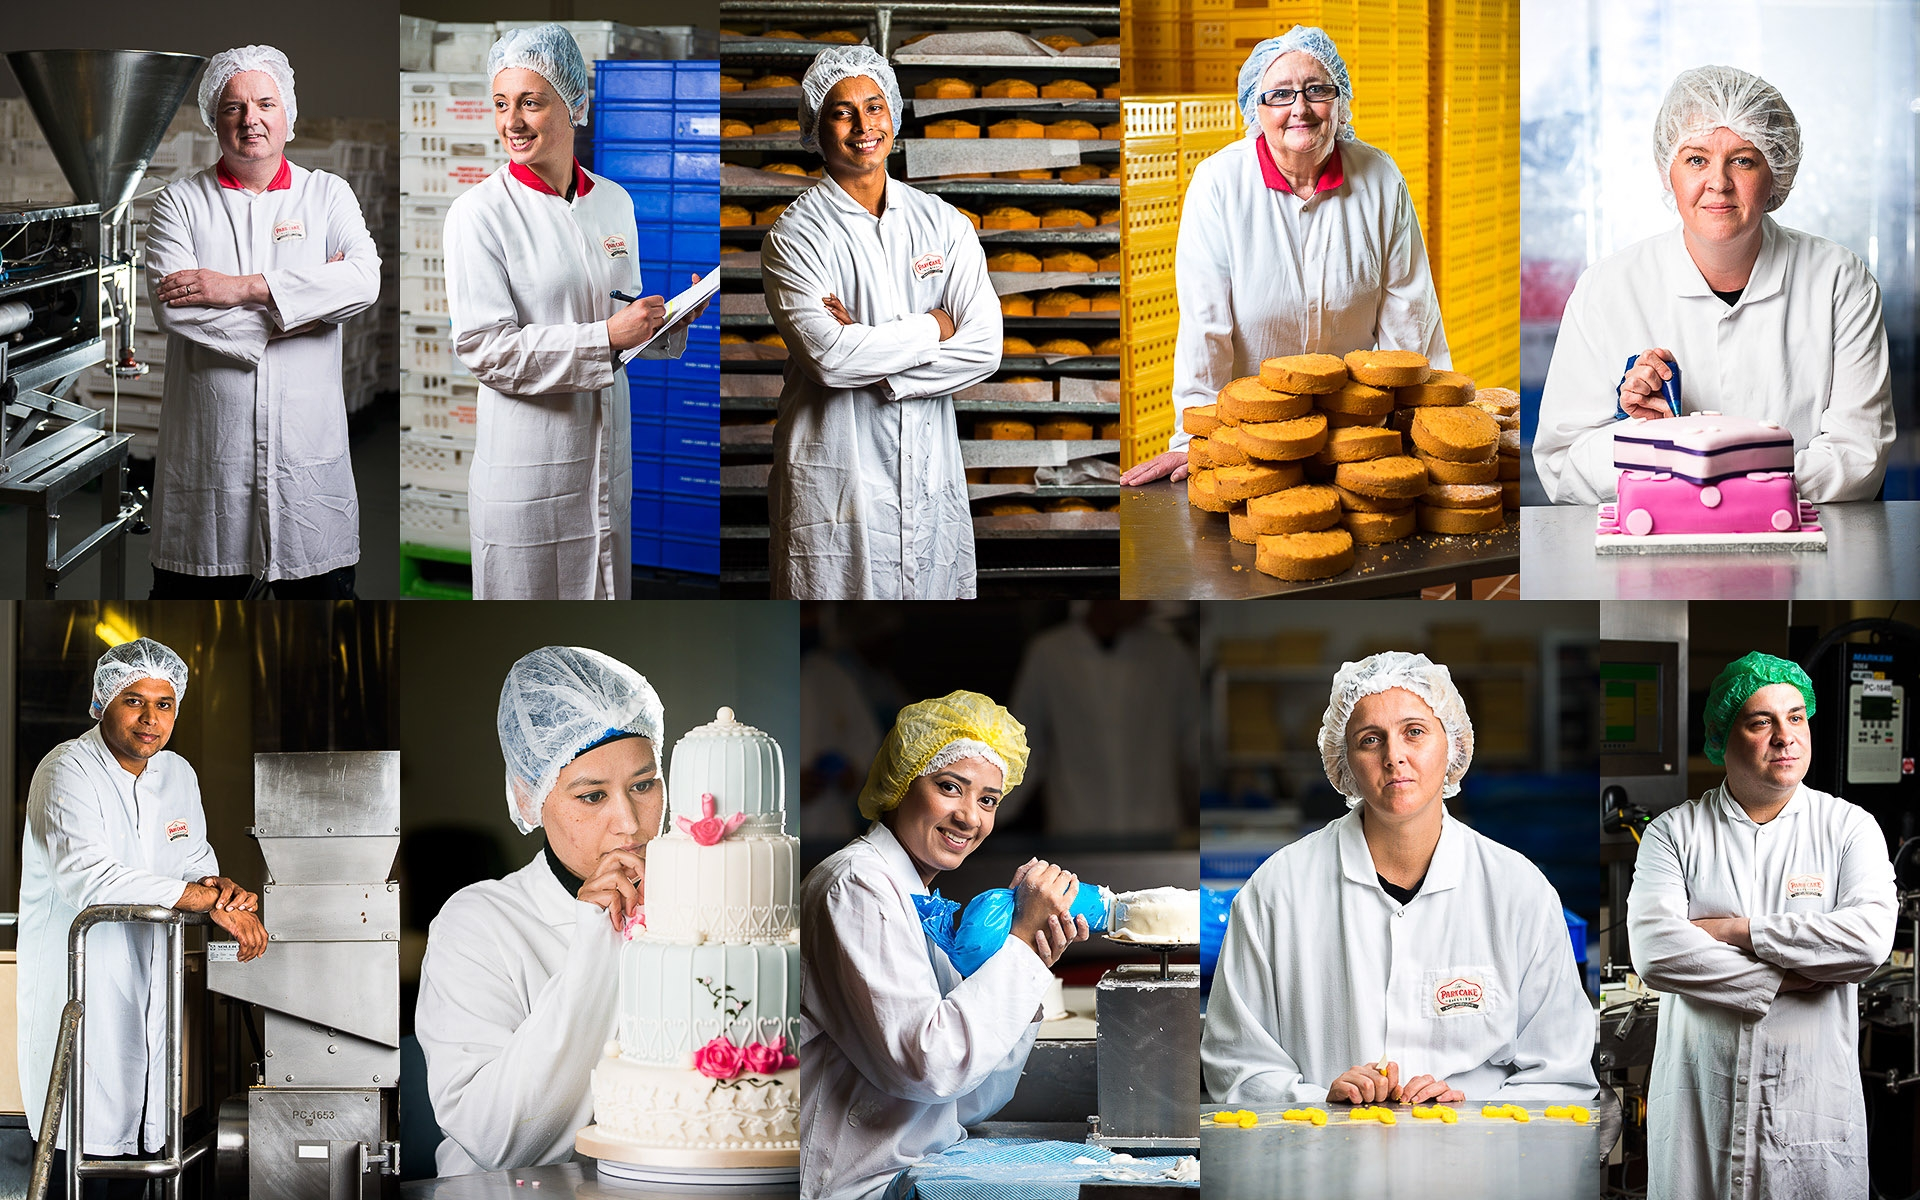 Multiple portrait photos of Park Cake bakery staff, Oldham UK